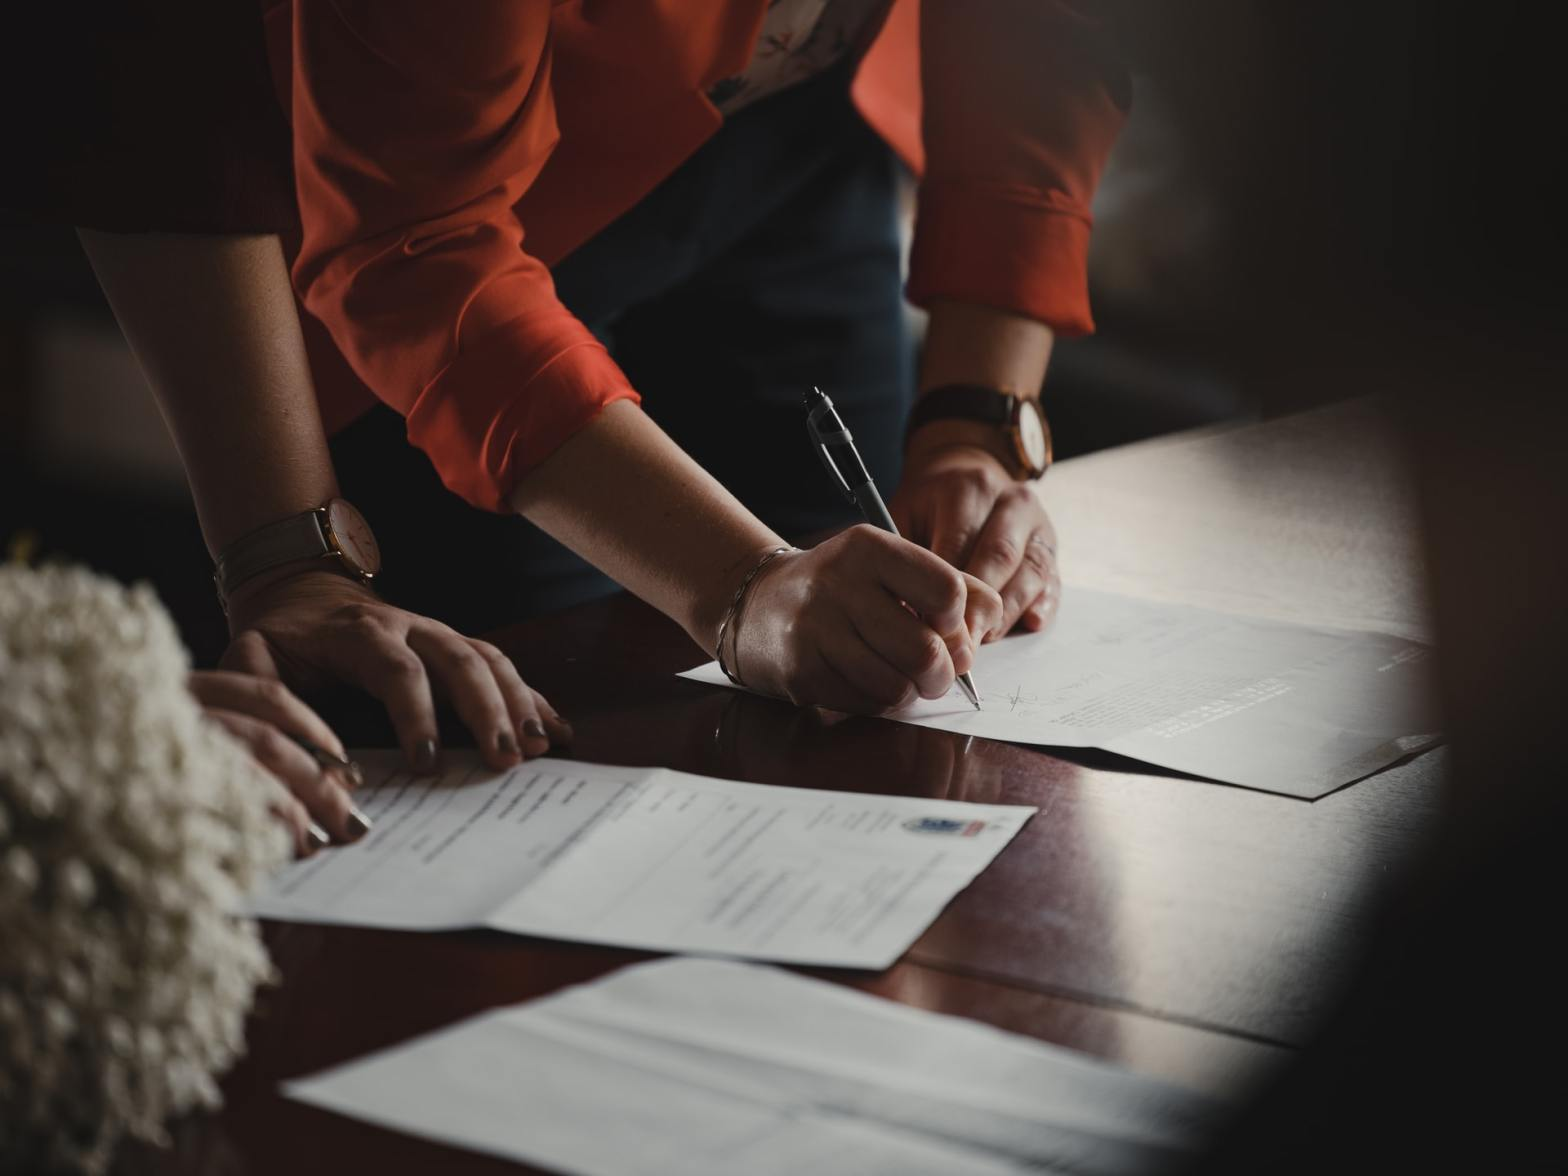 Two people signing an agreement